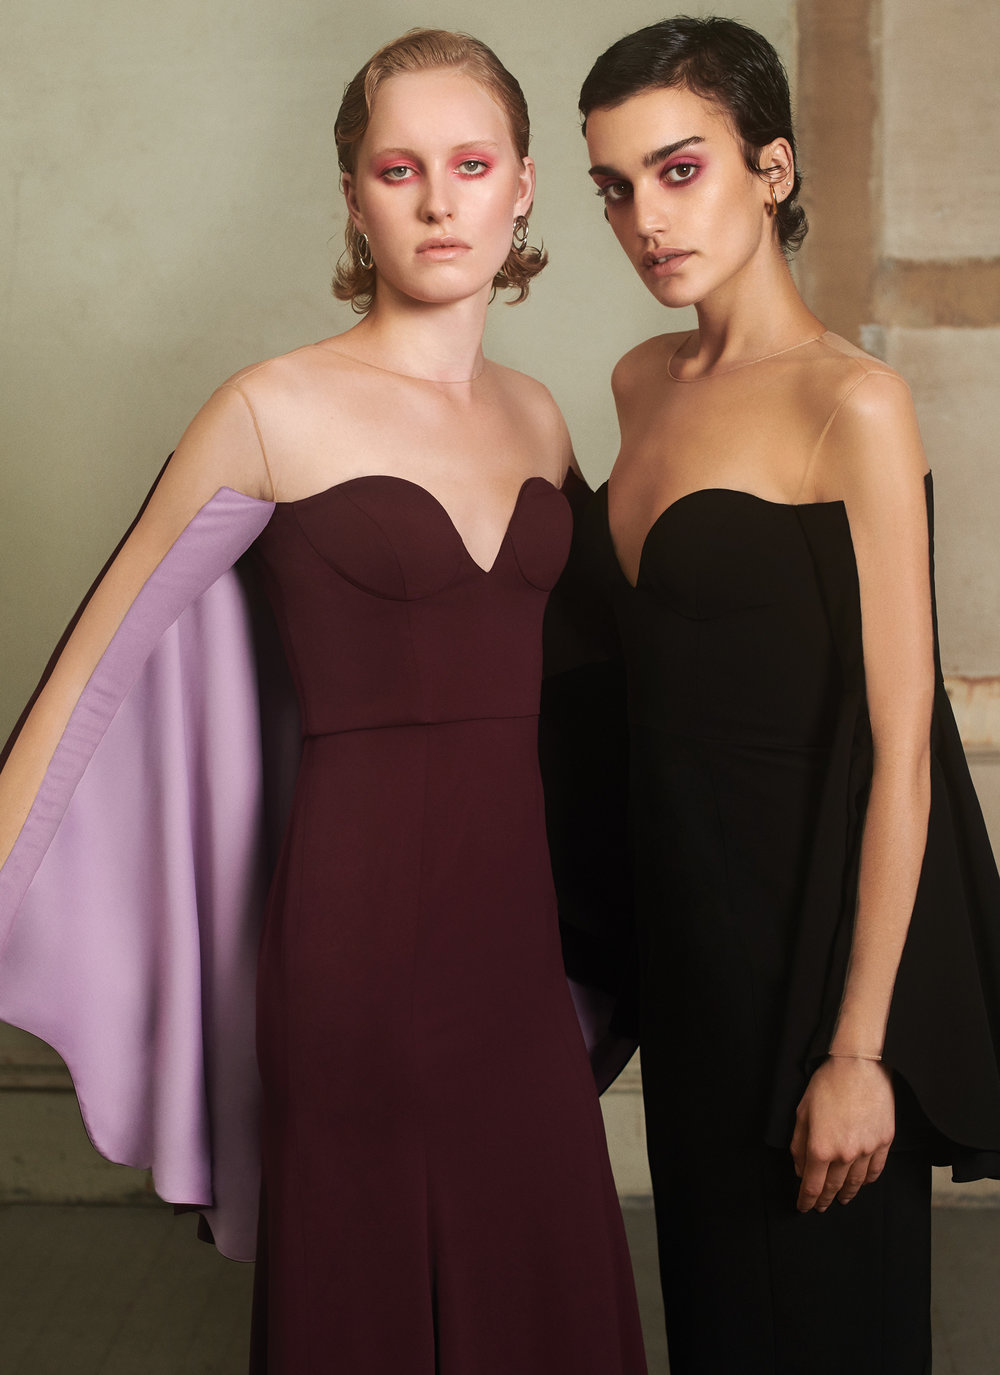 JULIANNA-BASS-SS19-20-19-DelRio-Gown-Bianca-Dress.jpg